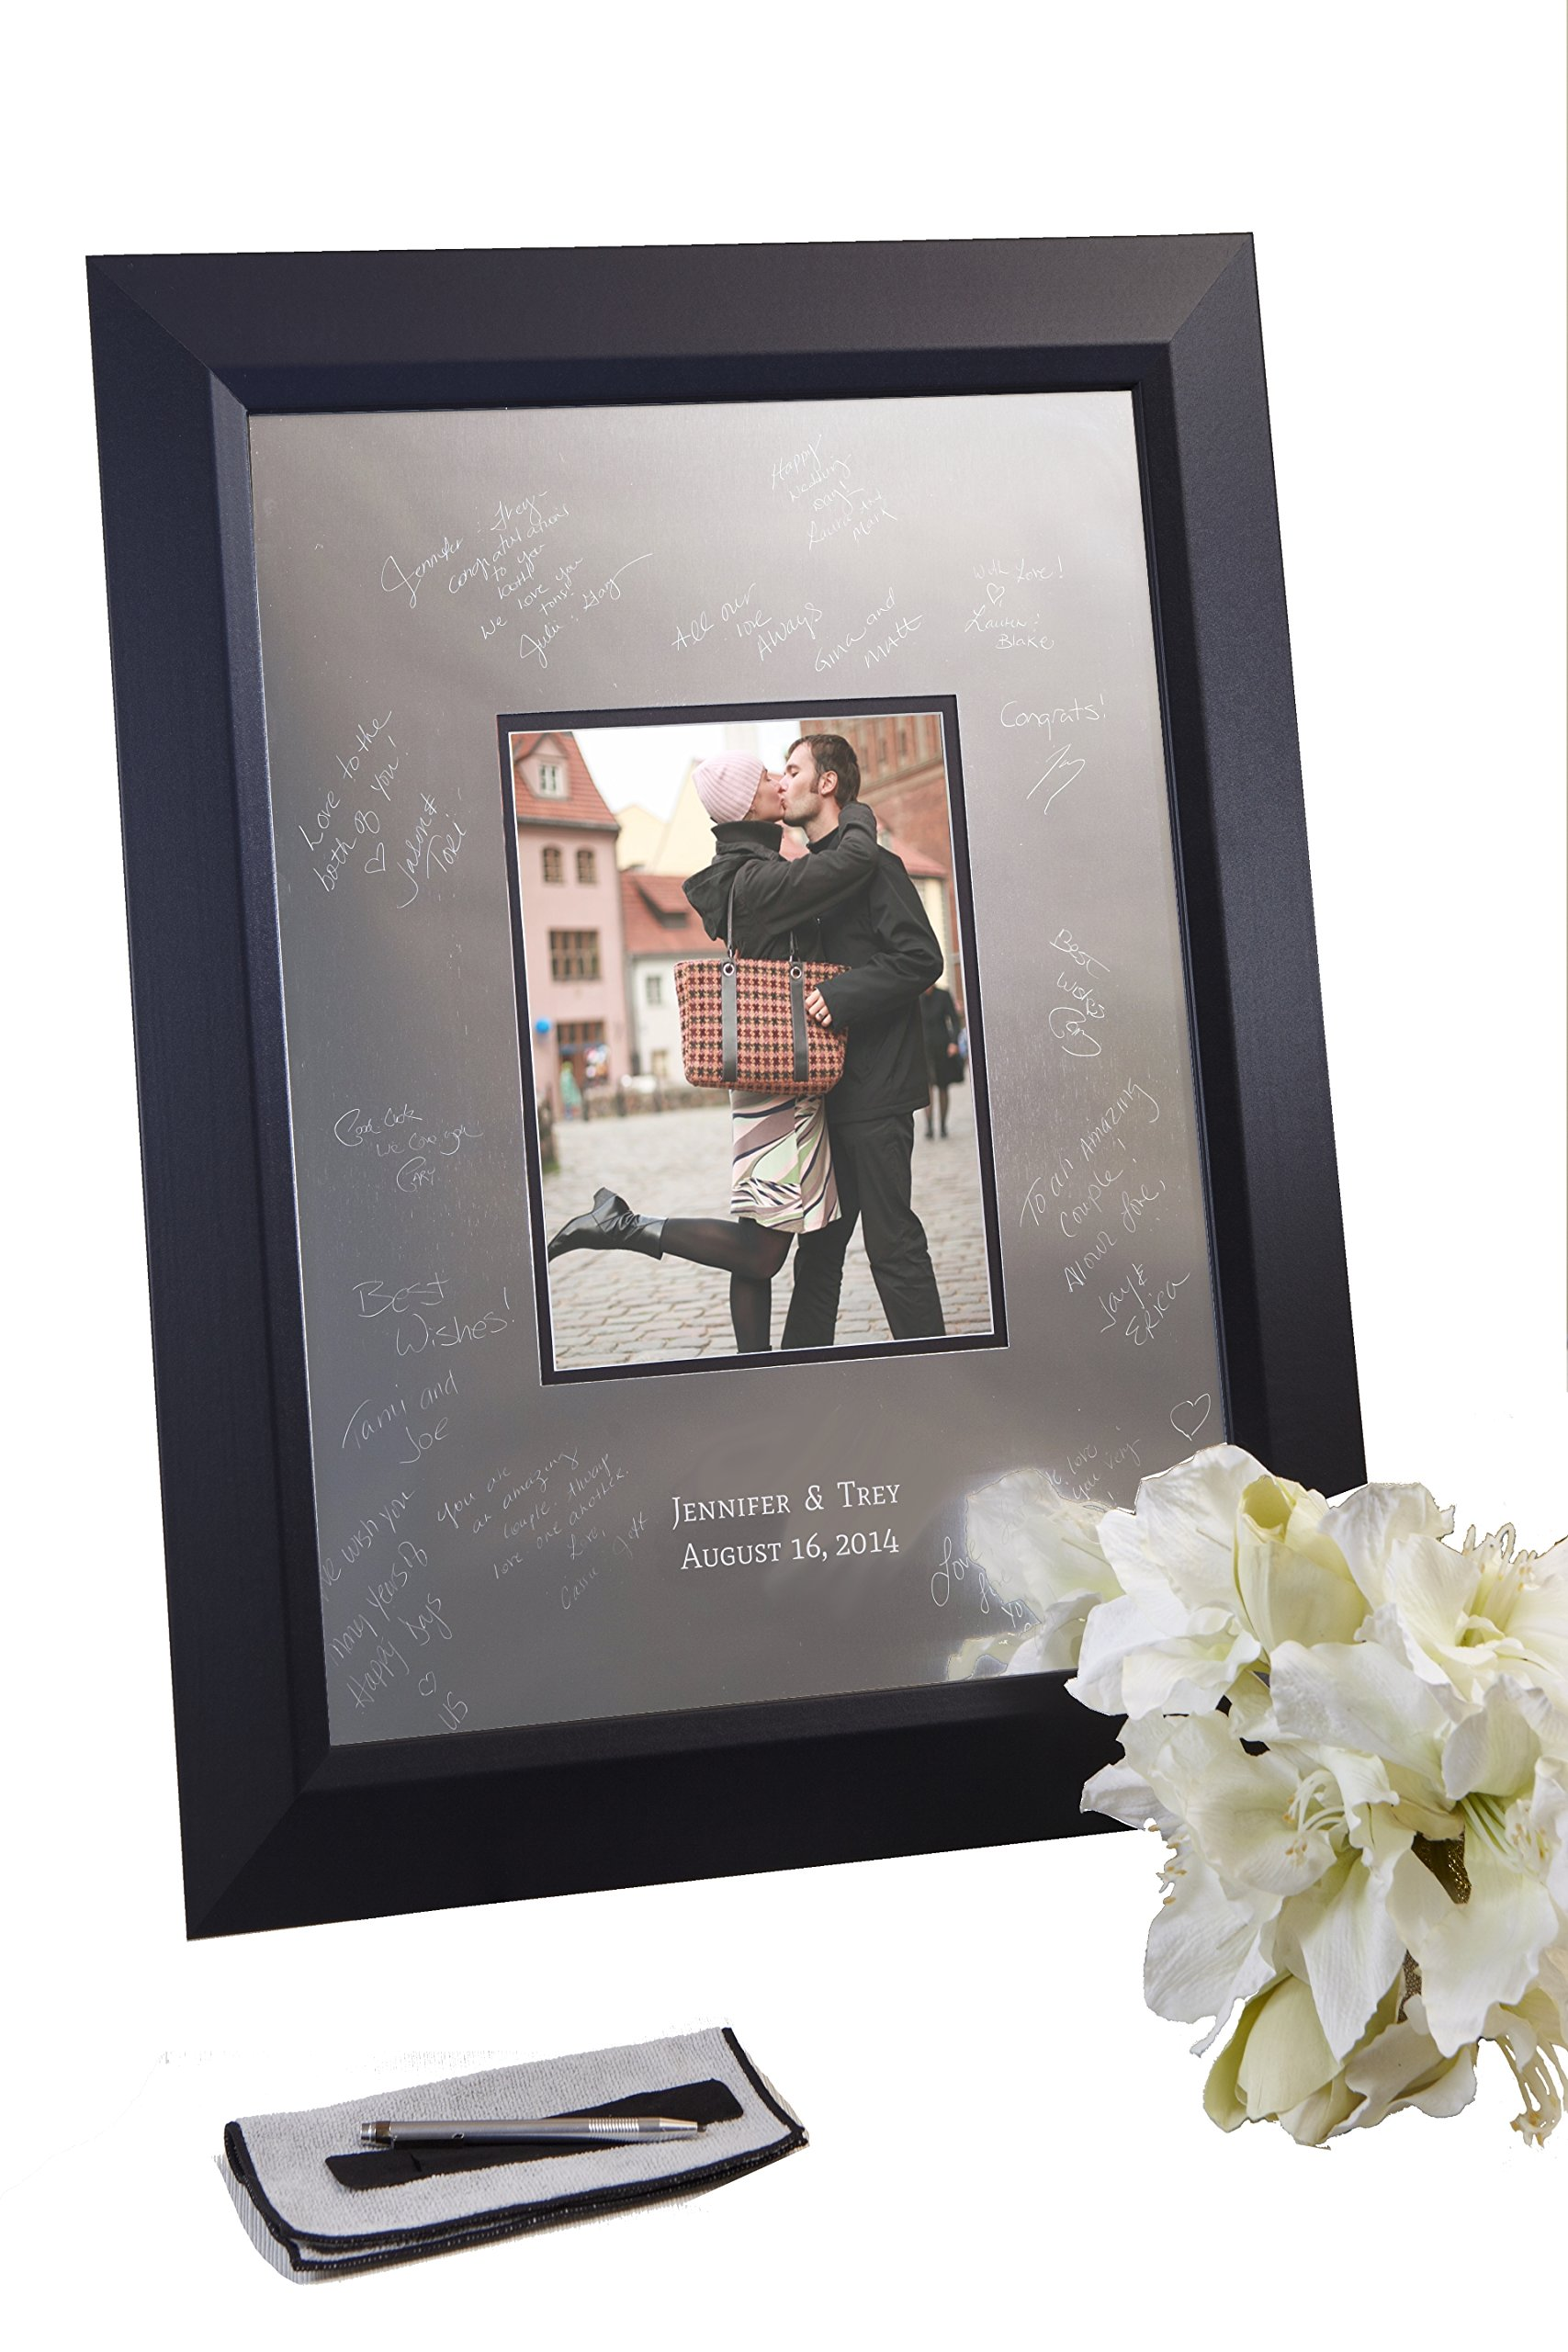 Signature Keepsakes Frame Engravable Signature Mat Guest Book, Small, Silver/Black by Signature Keepsakes